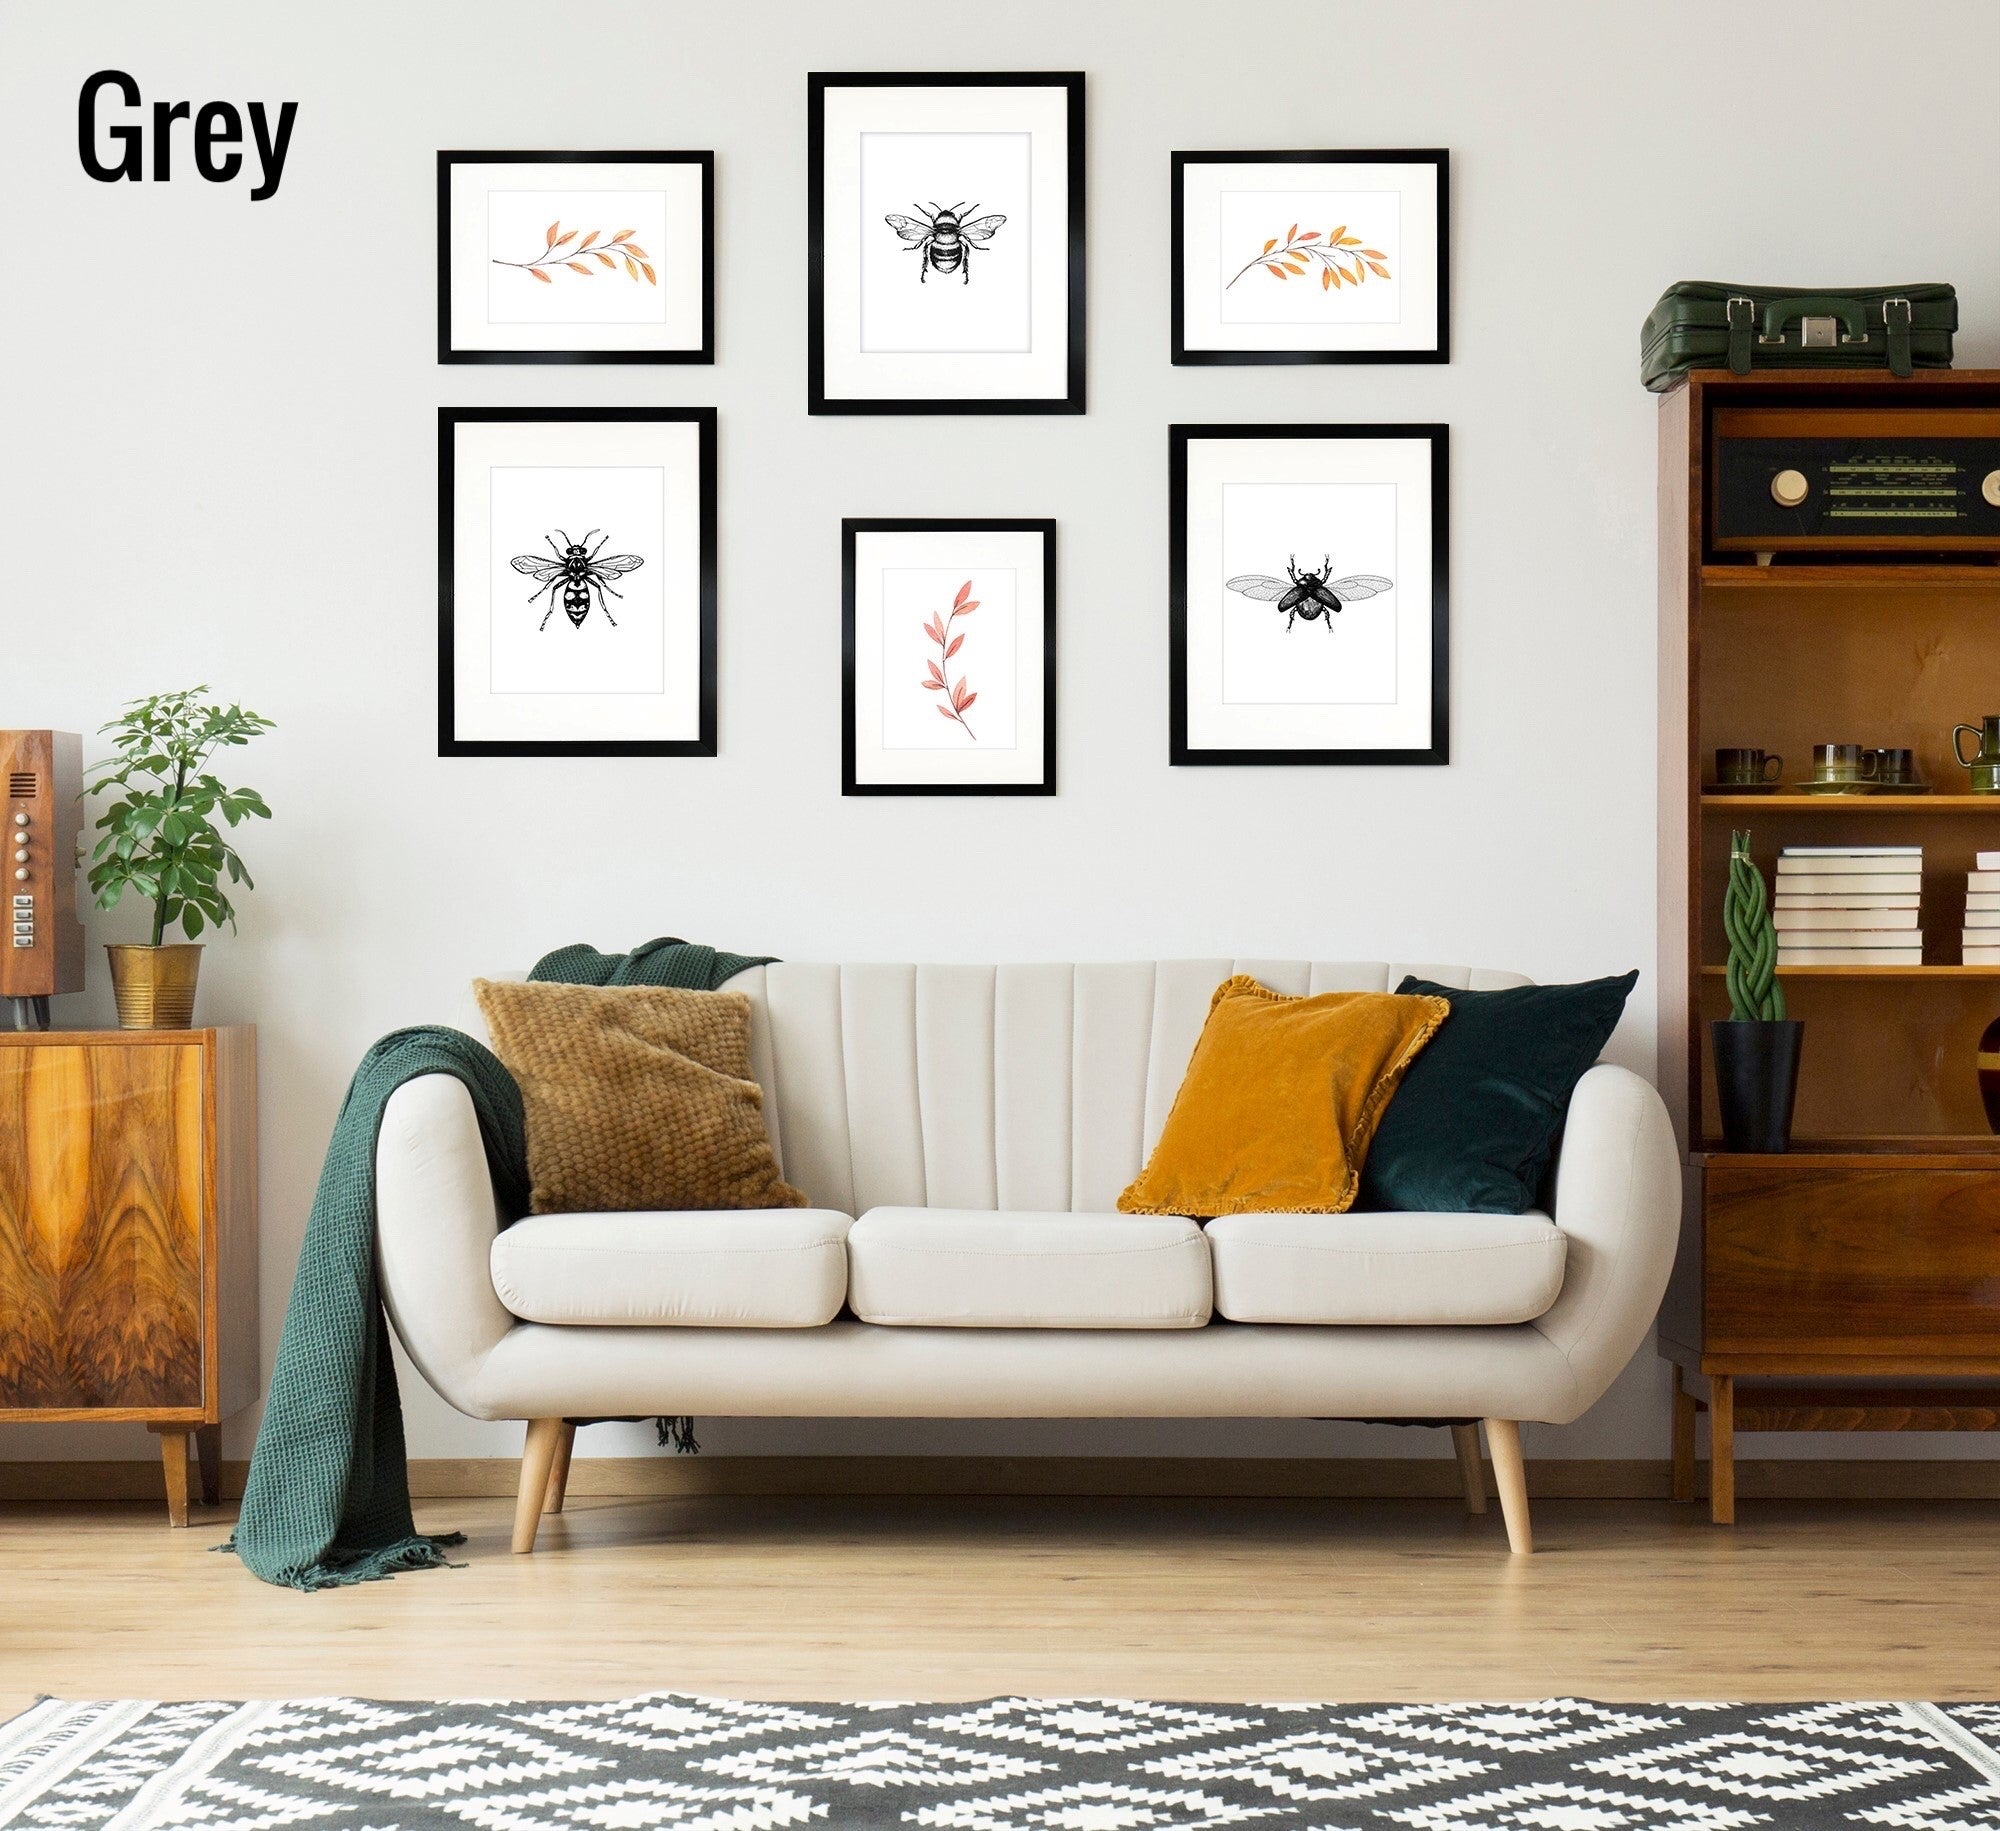 Oxford Grey Gallery Wall Set of 6 Frames - 3 x A3 for A4 and 3 x A4 for A5 Frames